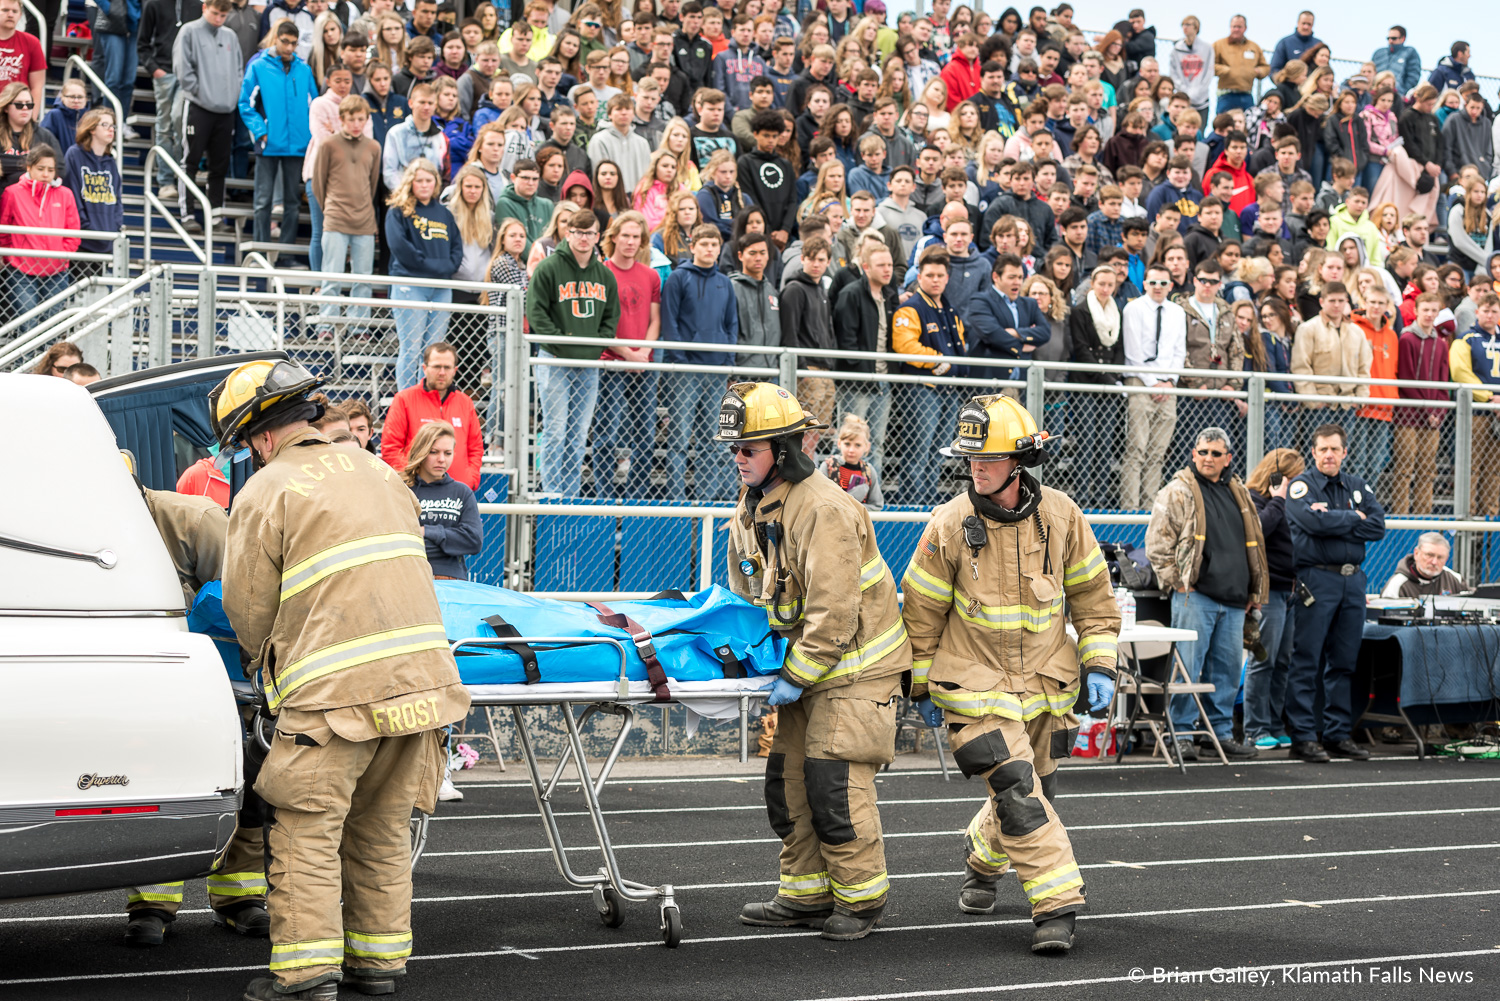 Operation Prom Night, a staged DUII car crash to teach teens the reality of drinking and driving. Kaila Mick, in the body bag, is loaded into the back of a hearse. First responders from KCSD1 are seen participating in the simulation as students look on. April 19, 2018 (Brian Gailey)